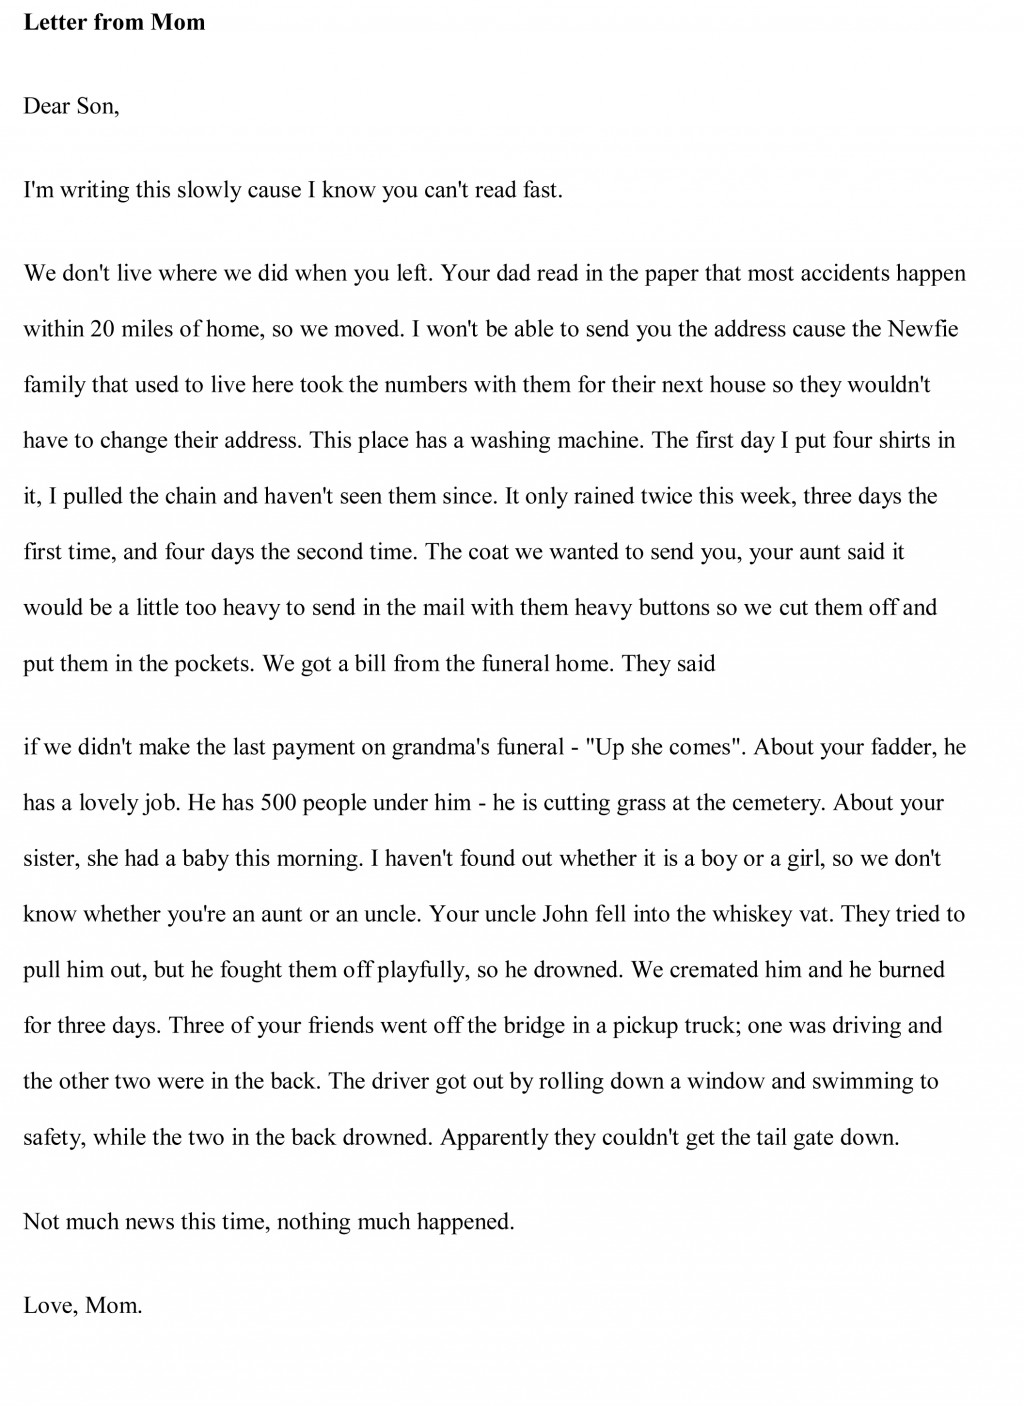 003 Essay Example Funny Essays Free Stupendous Topics Written By Students For College Large